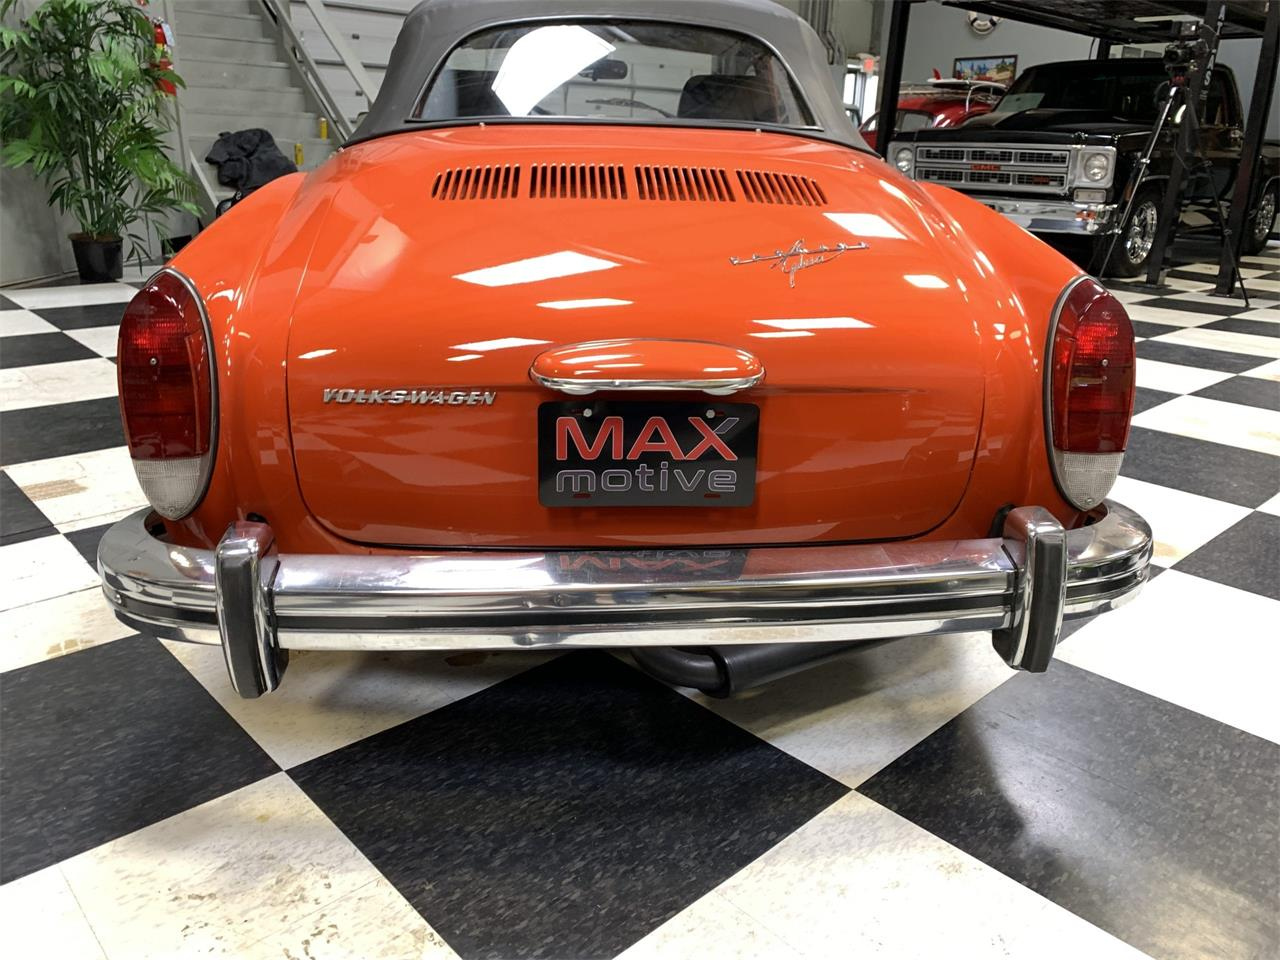 1974 Volkswagen Karmann Ghia for sale in Pittsburgh, PA – photo 21